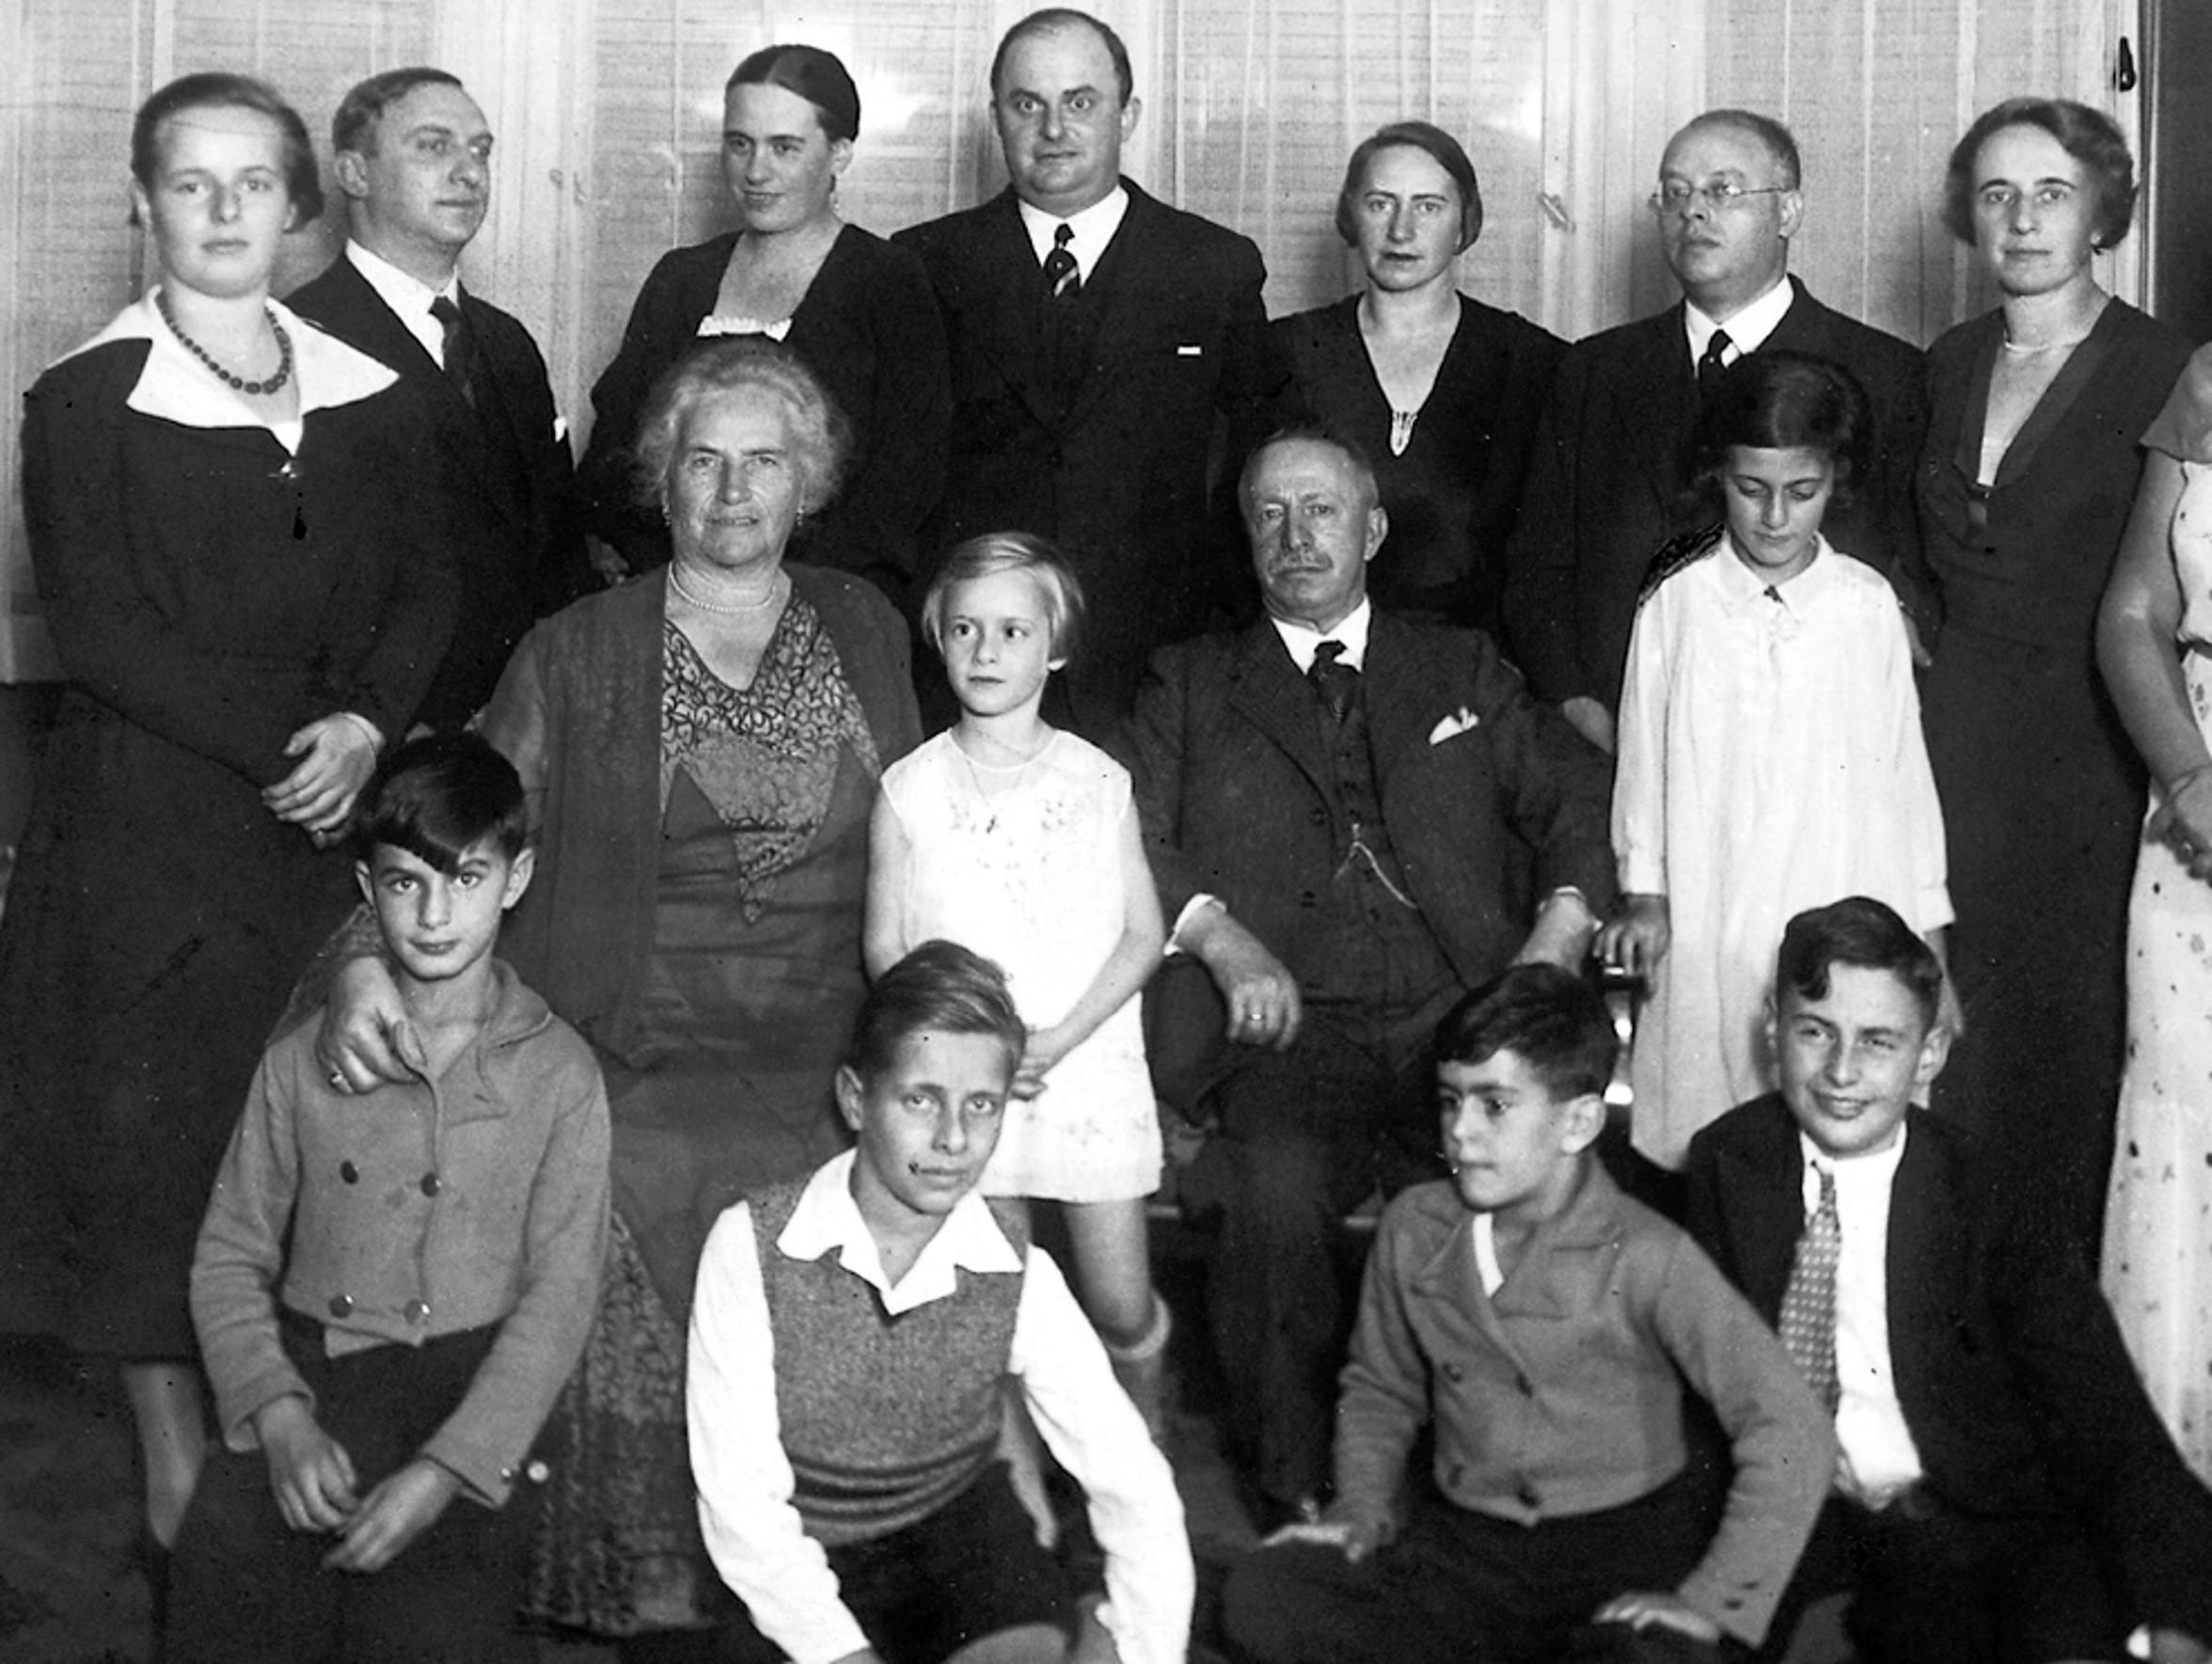 The Weisskopf family circa 1933, one of  the last times